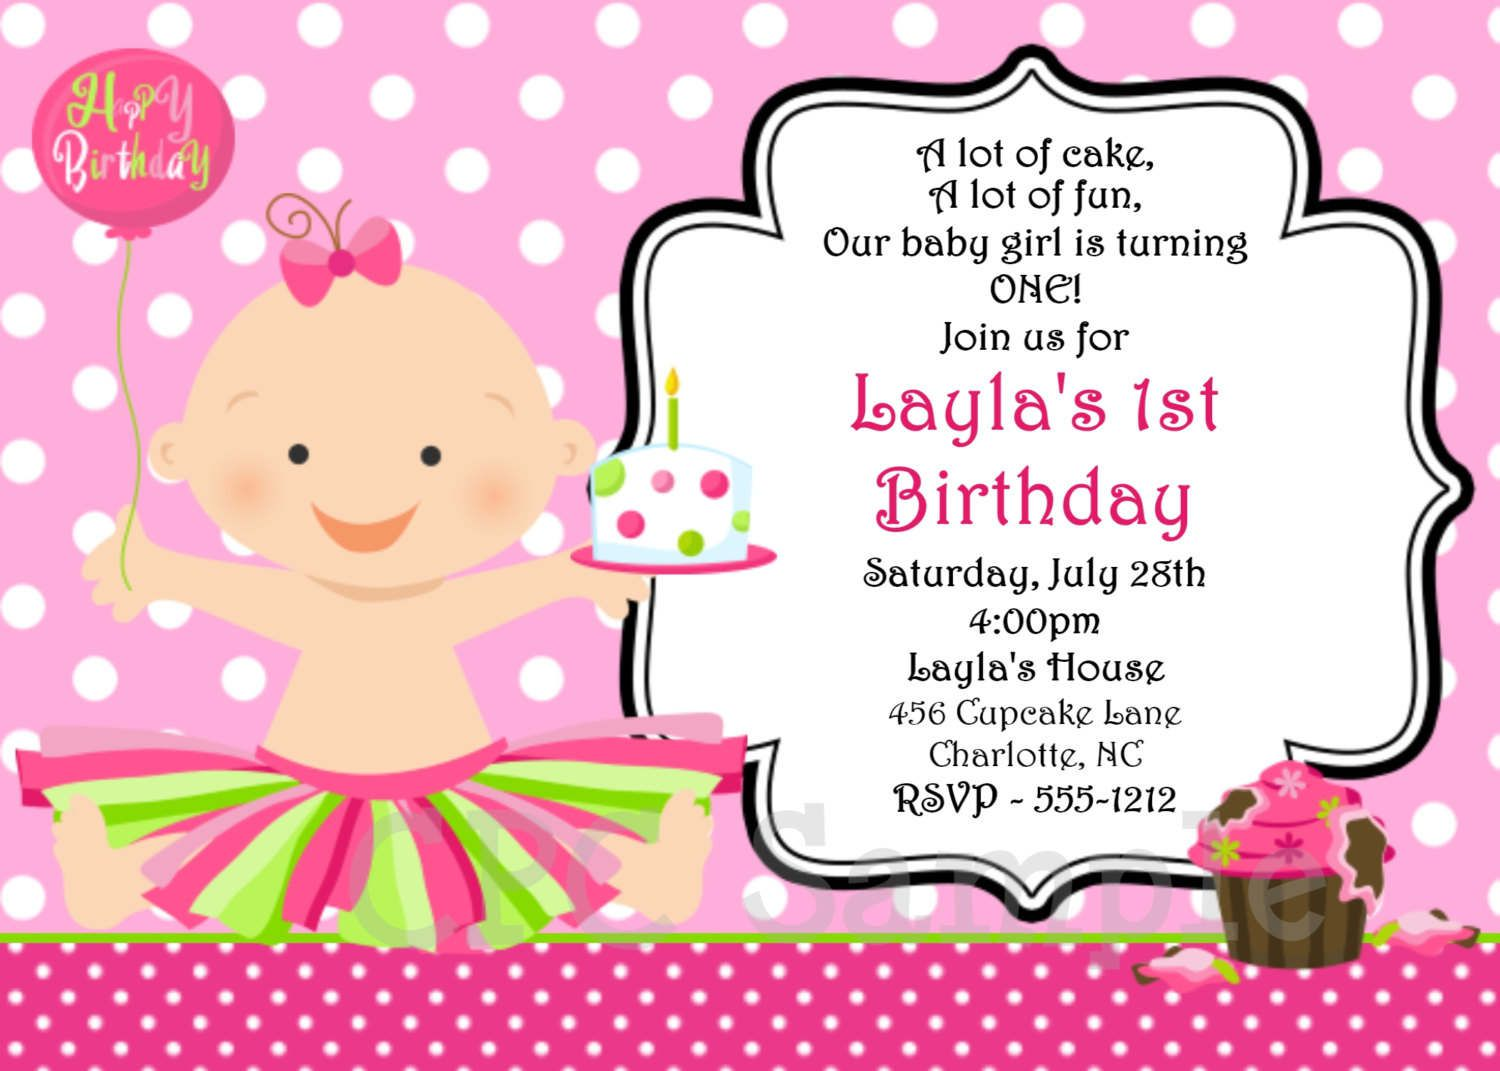 design birthday invitations online to print ; Birthday-invitations-design